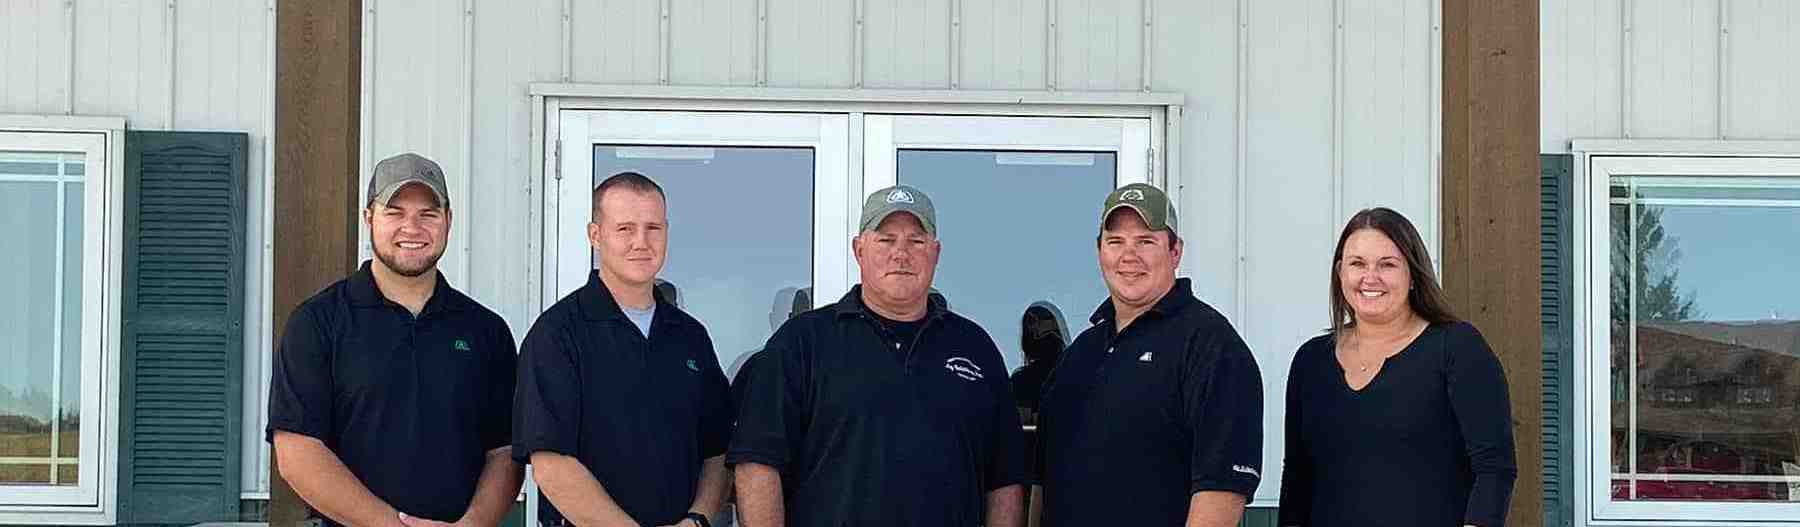 Team Ag Solutions cropped